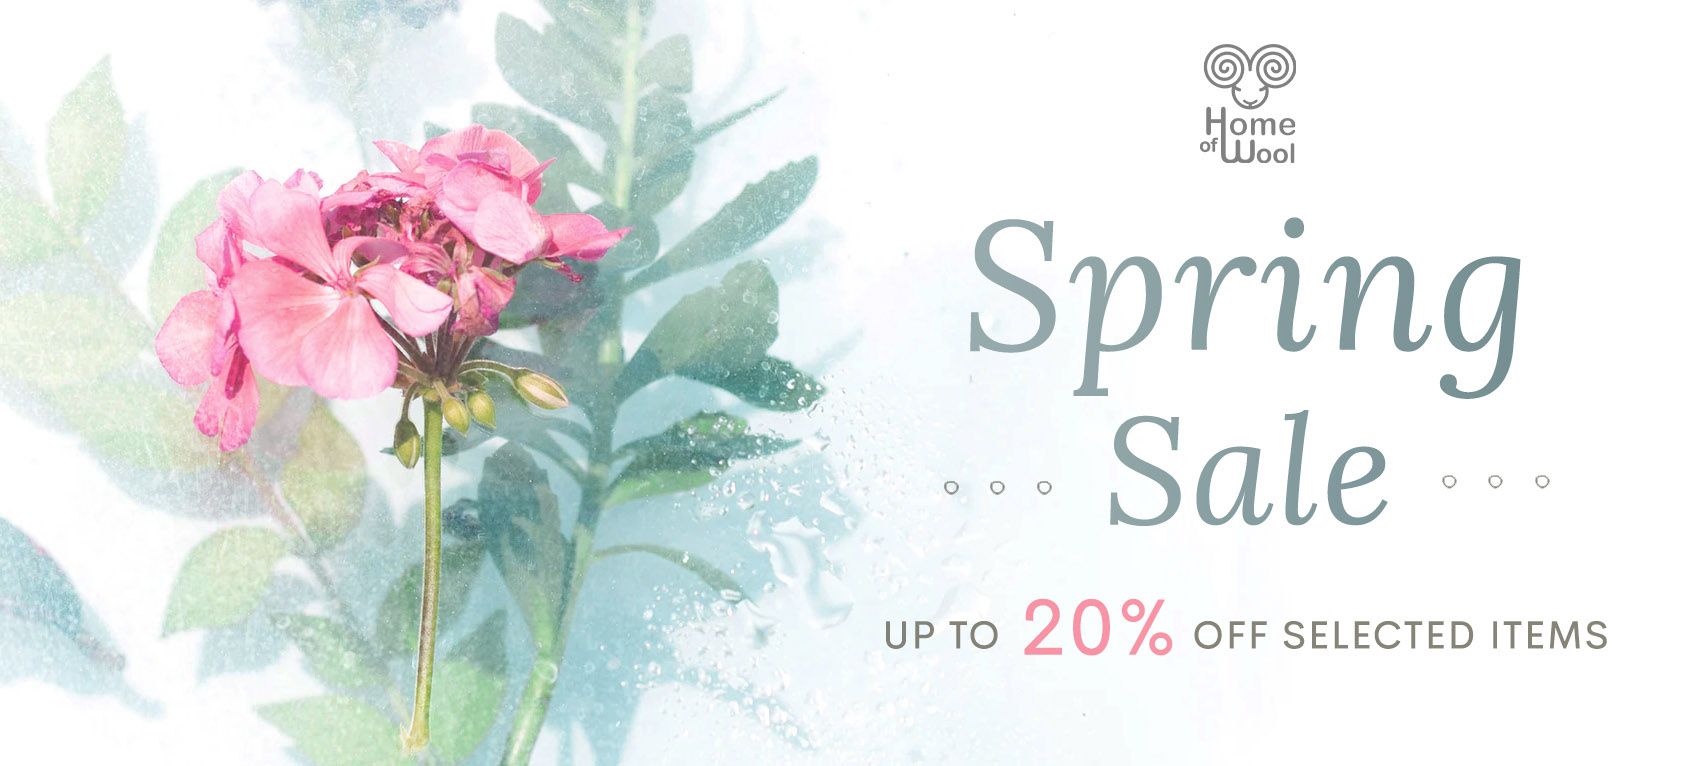 Home of Wool spring sale